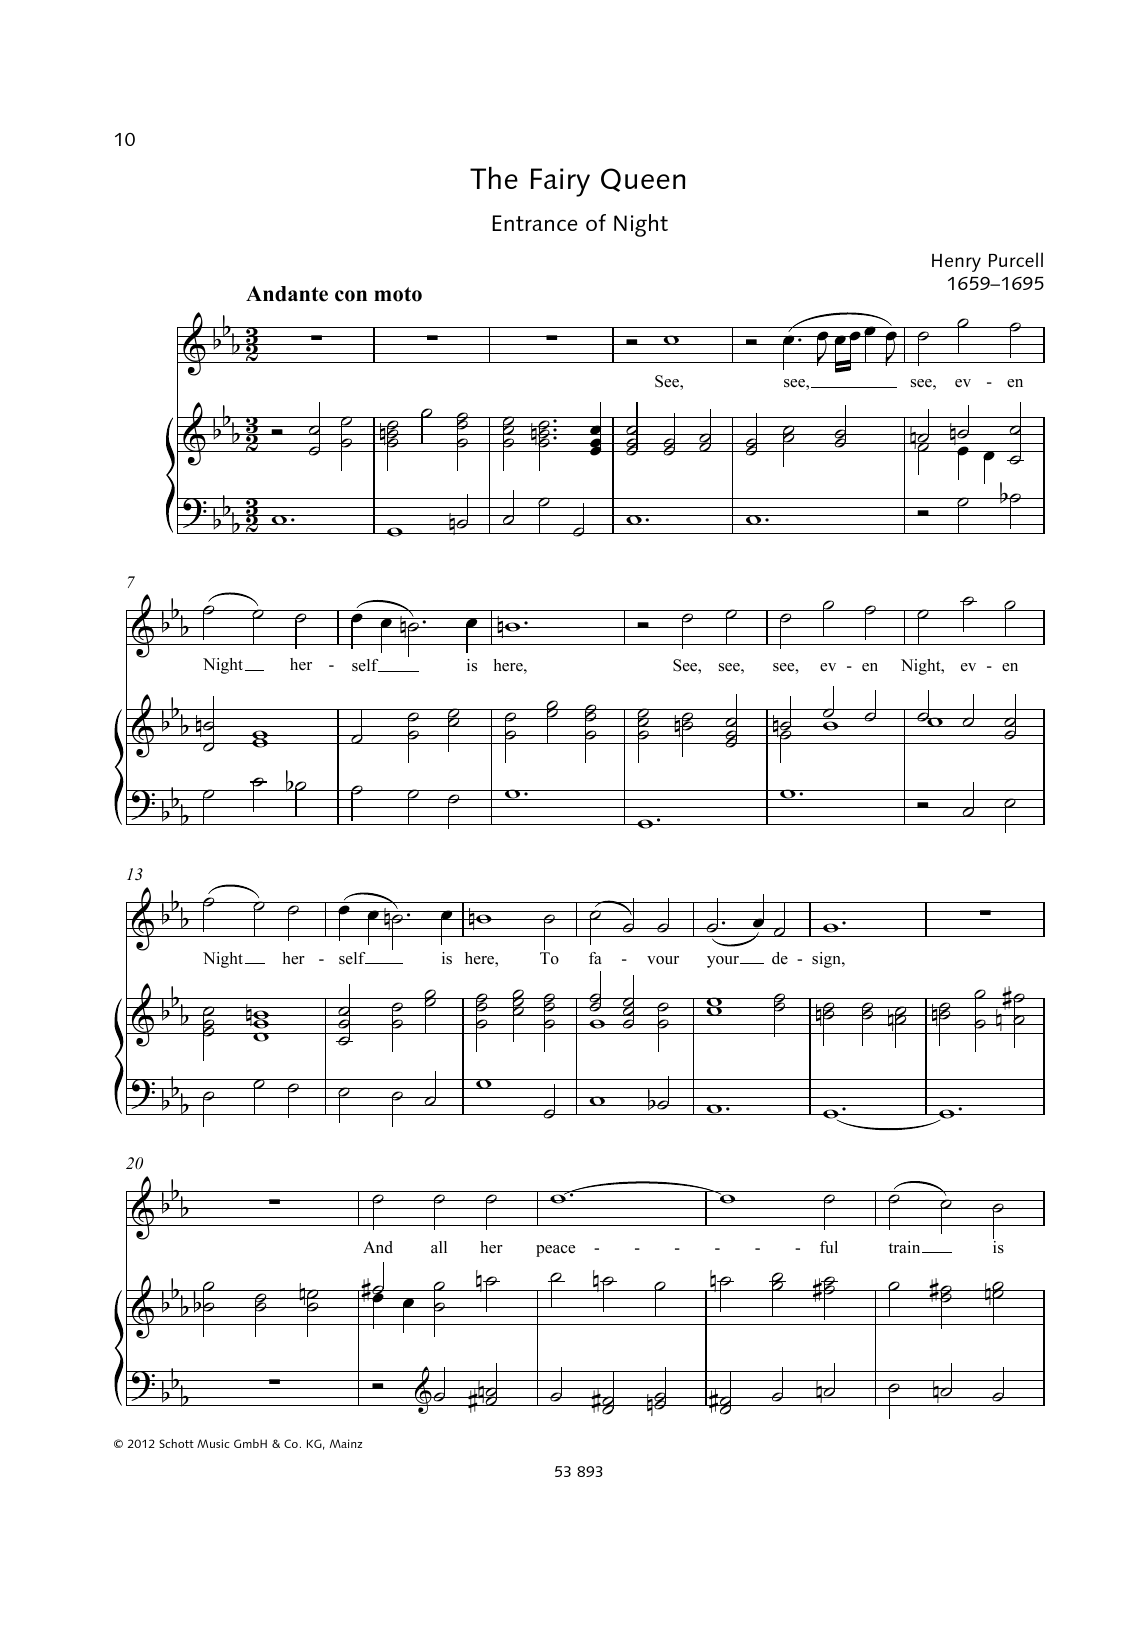 See, Even Night herself is here Sheet Music